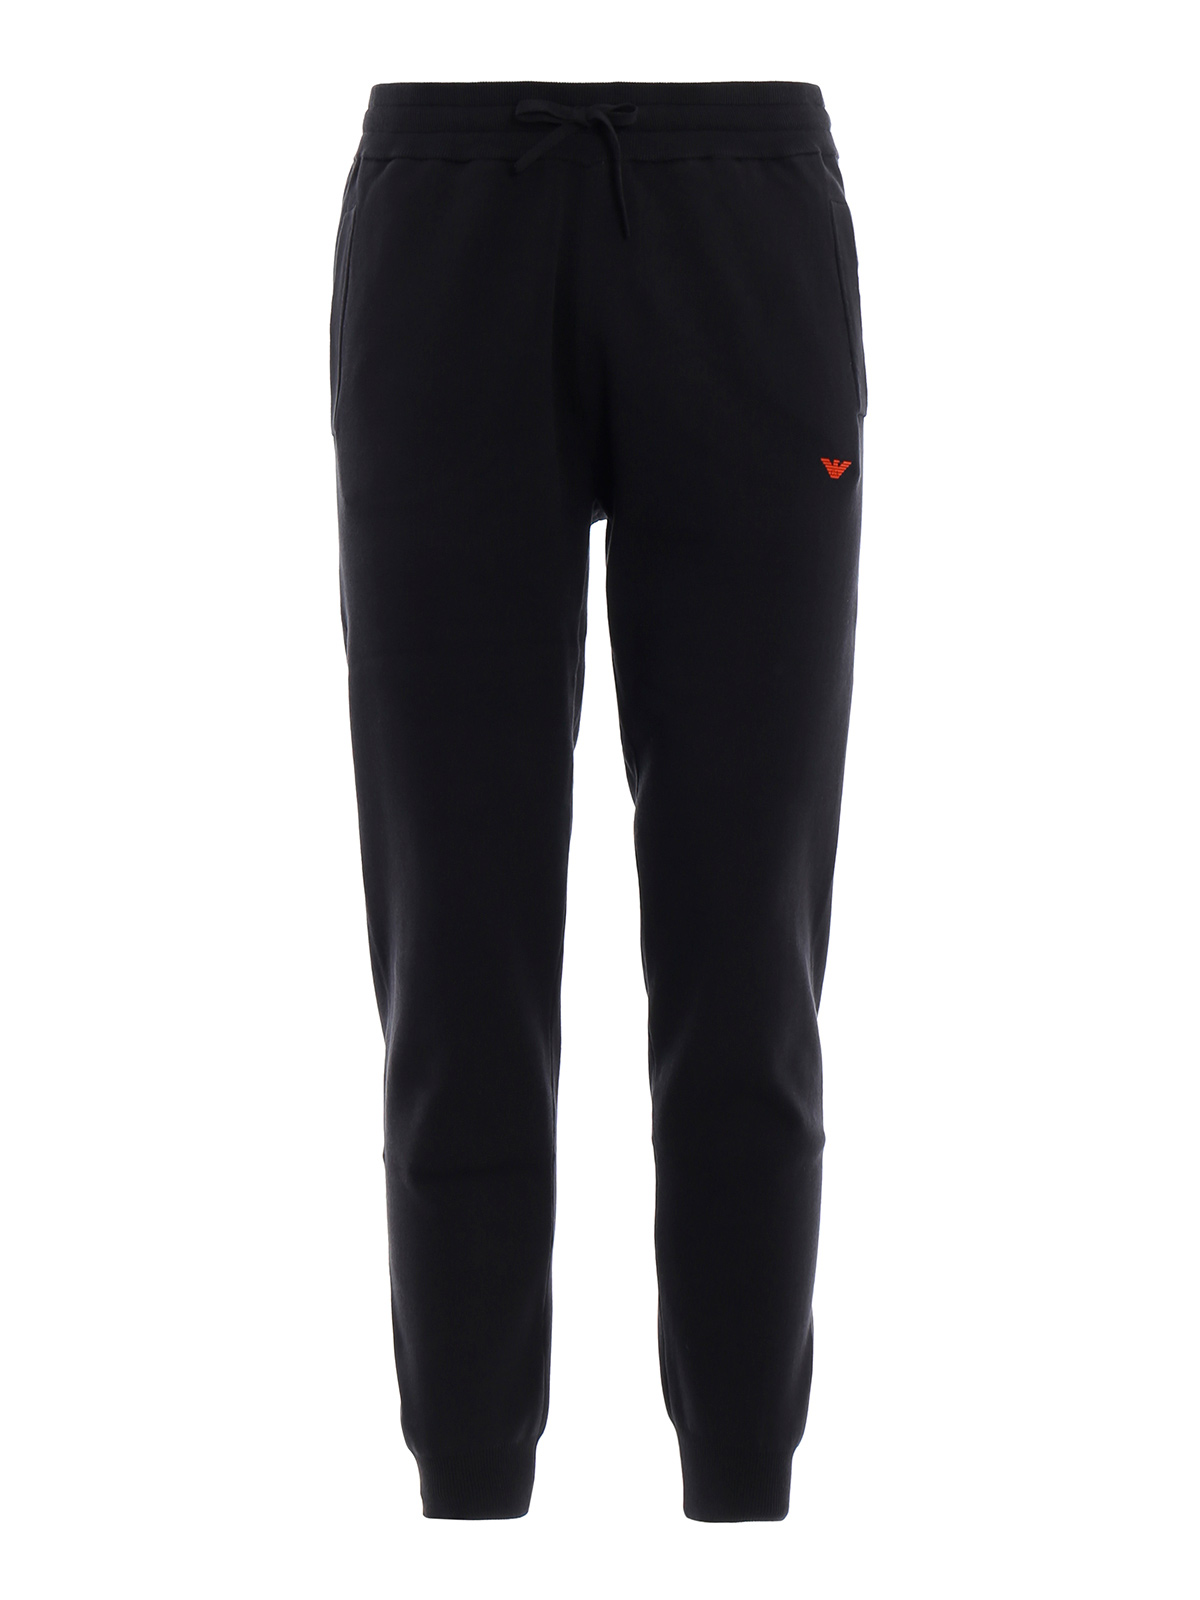 Picture of EMPORIO ARMANI | Men's Tracksuit Bottoms